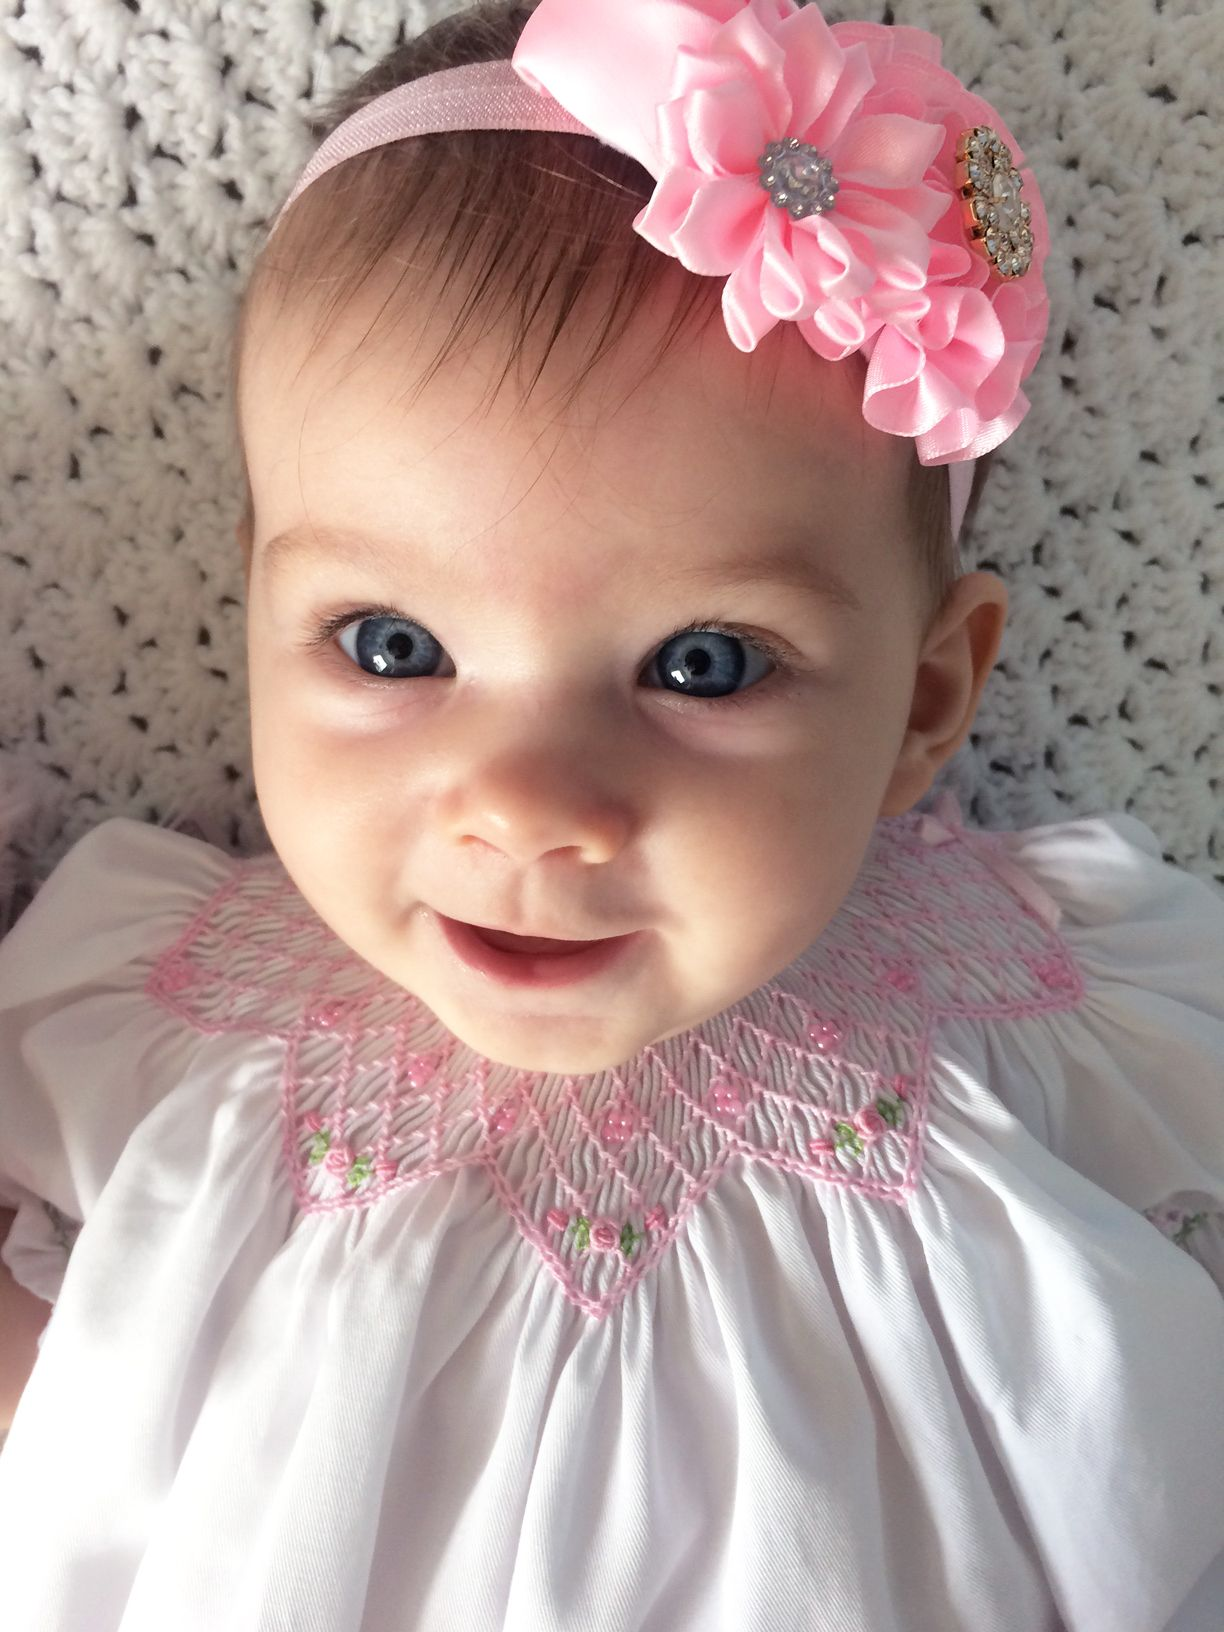 Beautiful baby girls wearing a hand smocked white and pink dress and